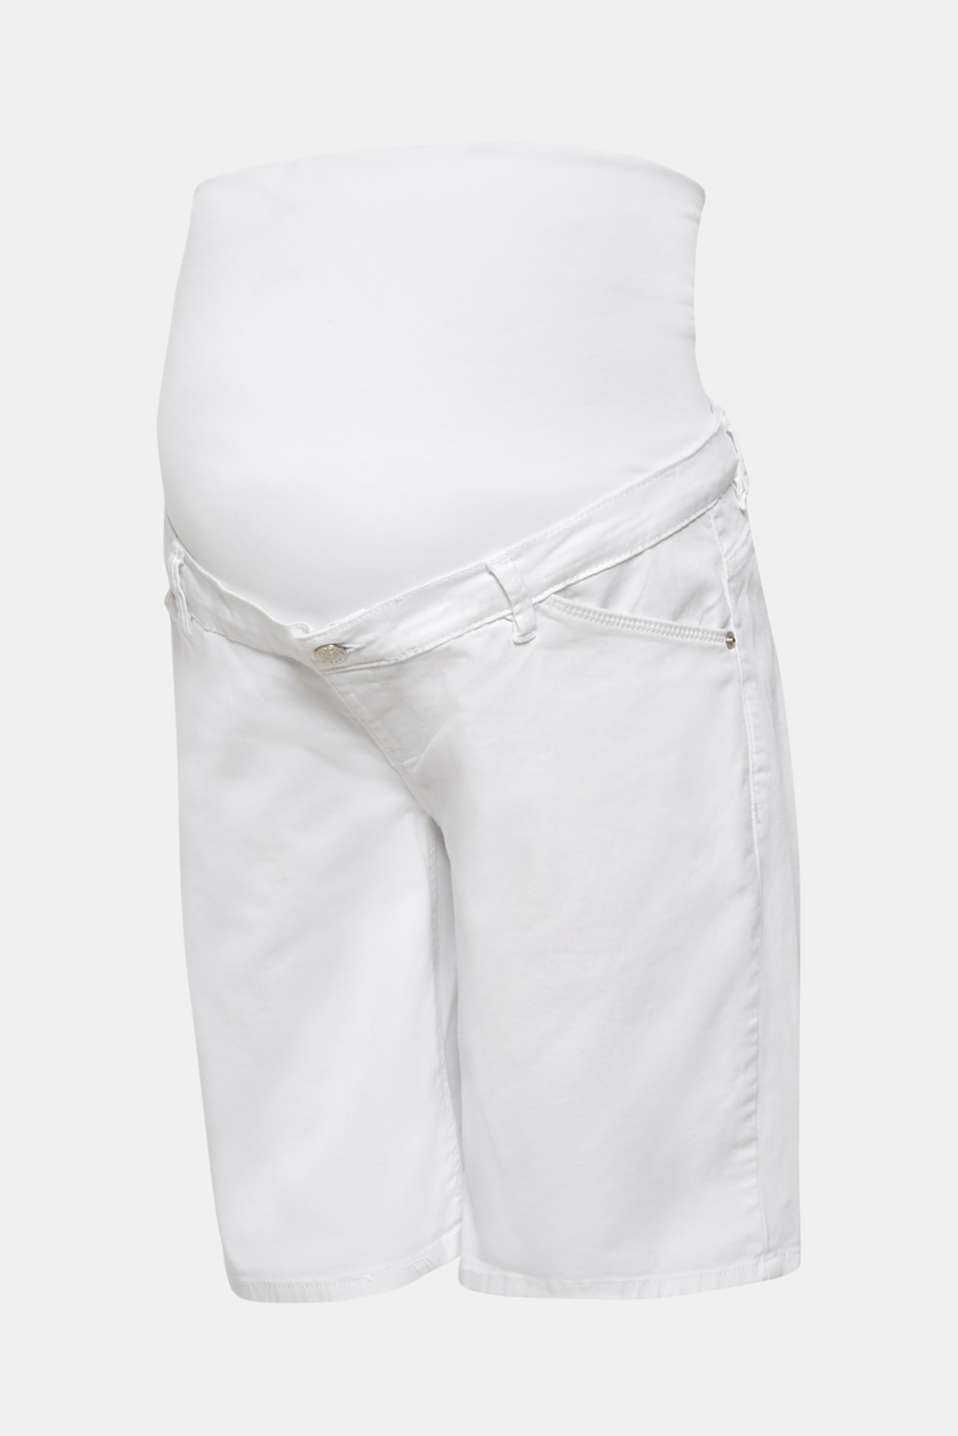 Chino shorts with an under-bump waistband, LCWHITE, detail image number 6